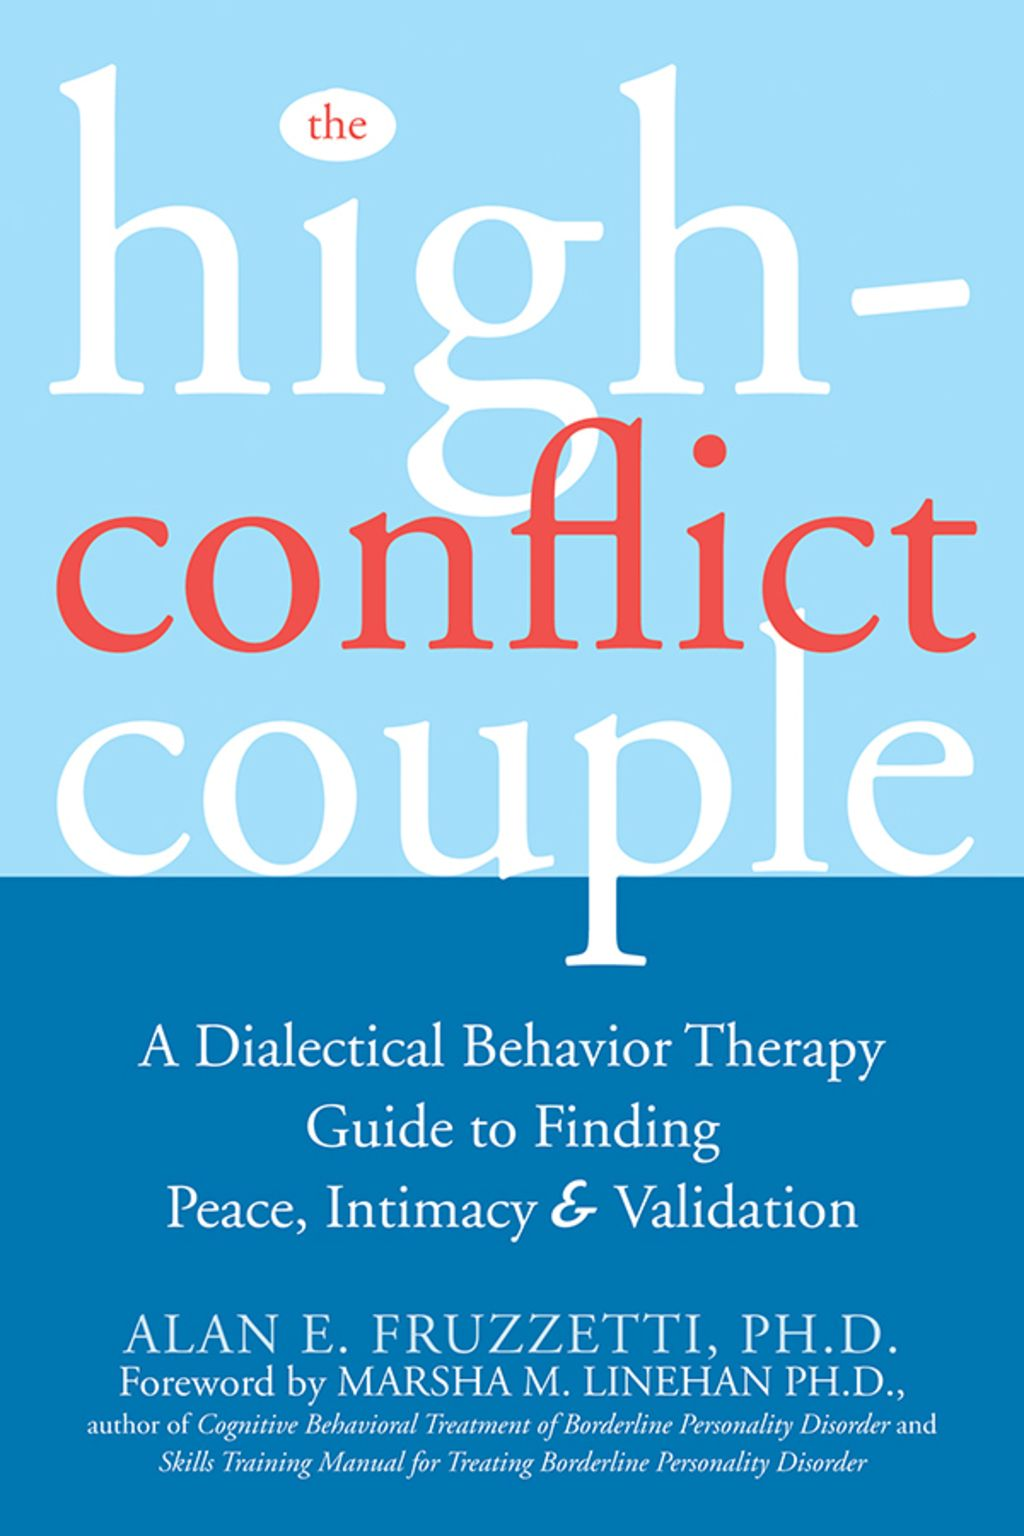 The High Conflict Couple Ebook